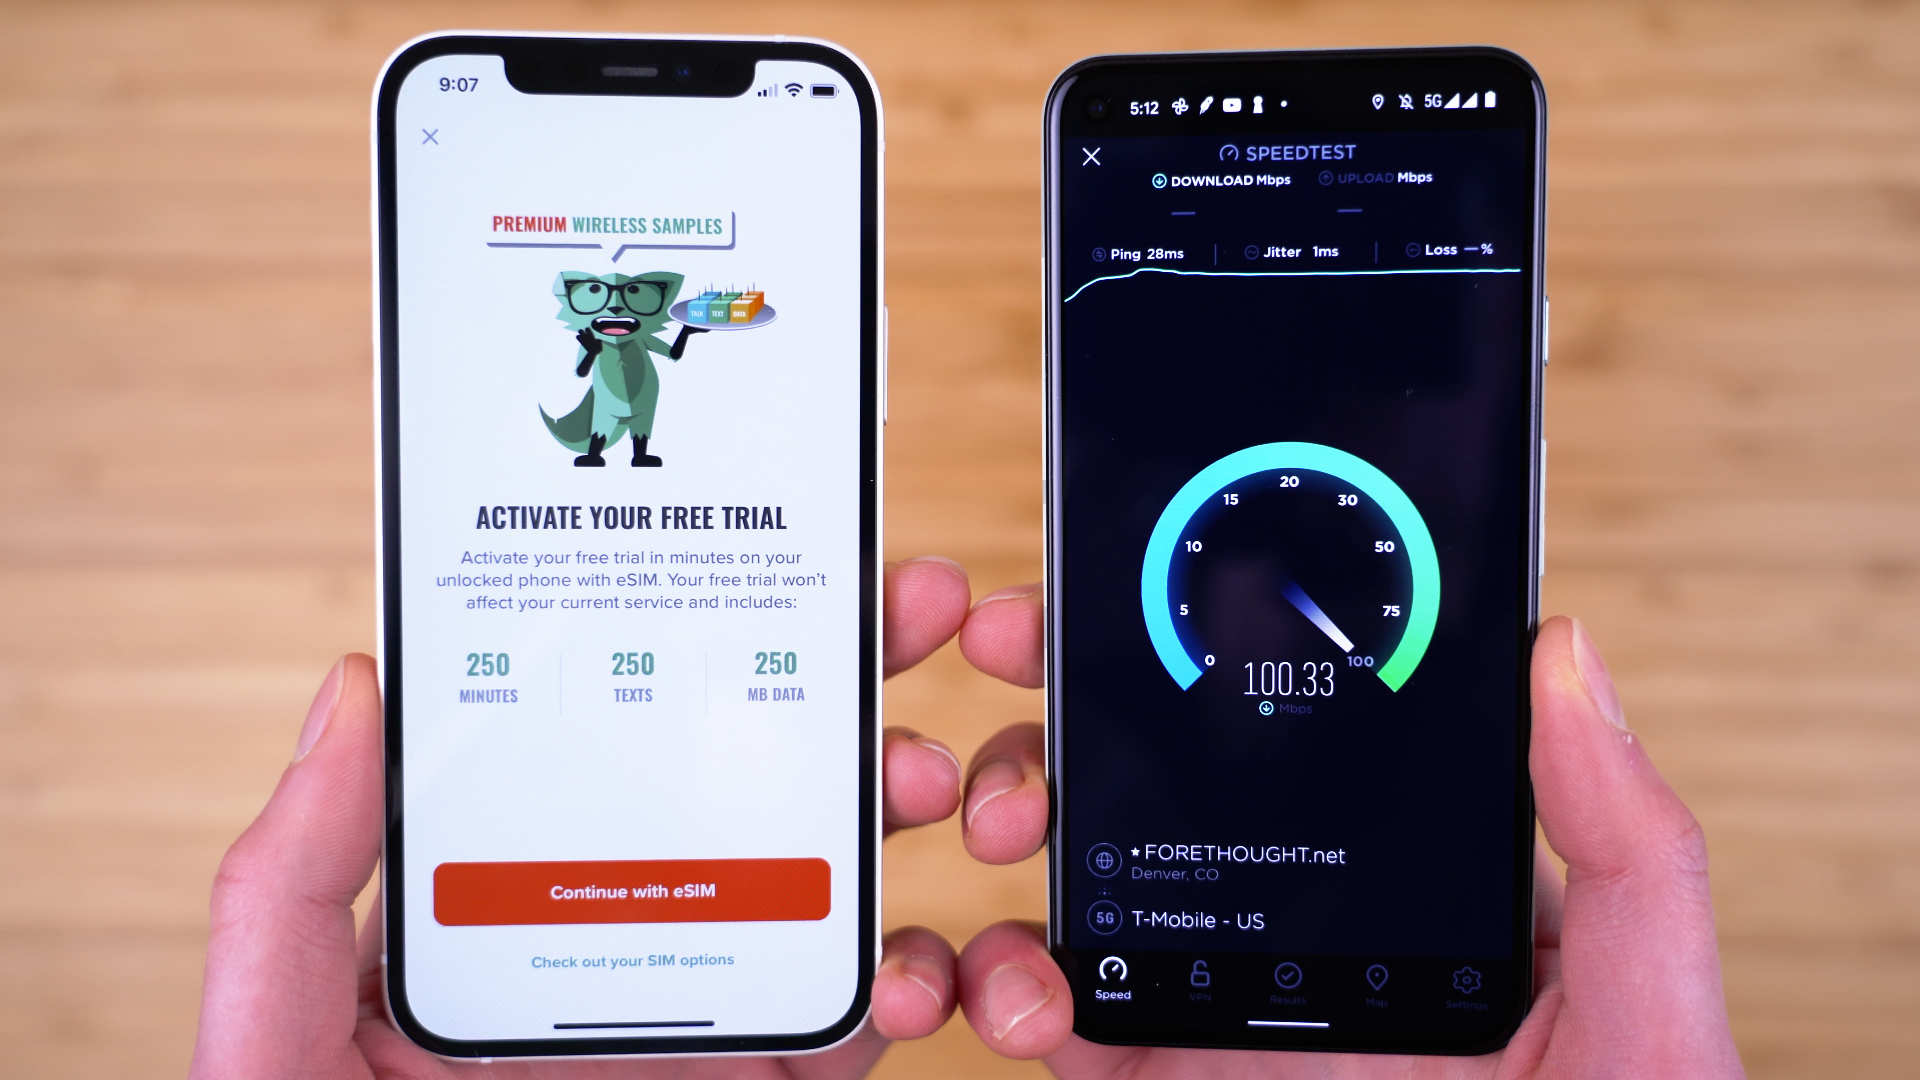 mint mobile free trial on iPhone and Android phone